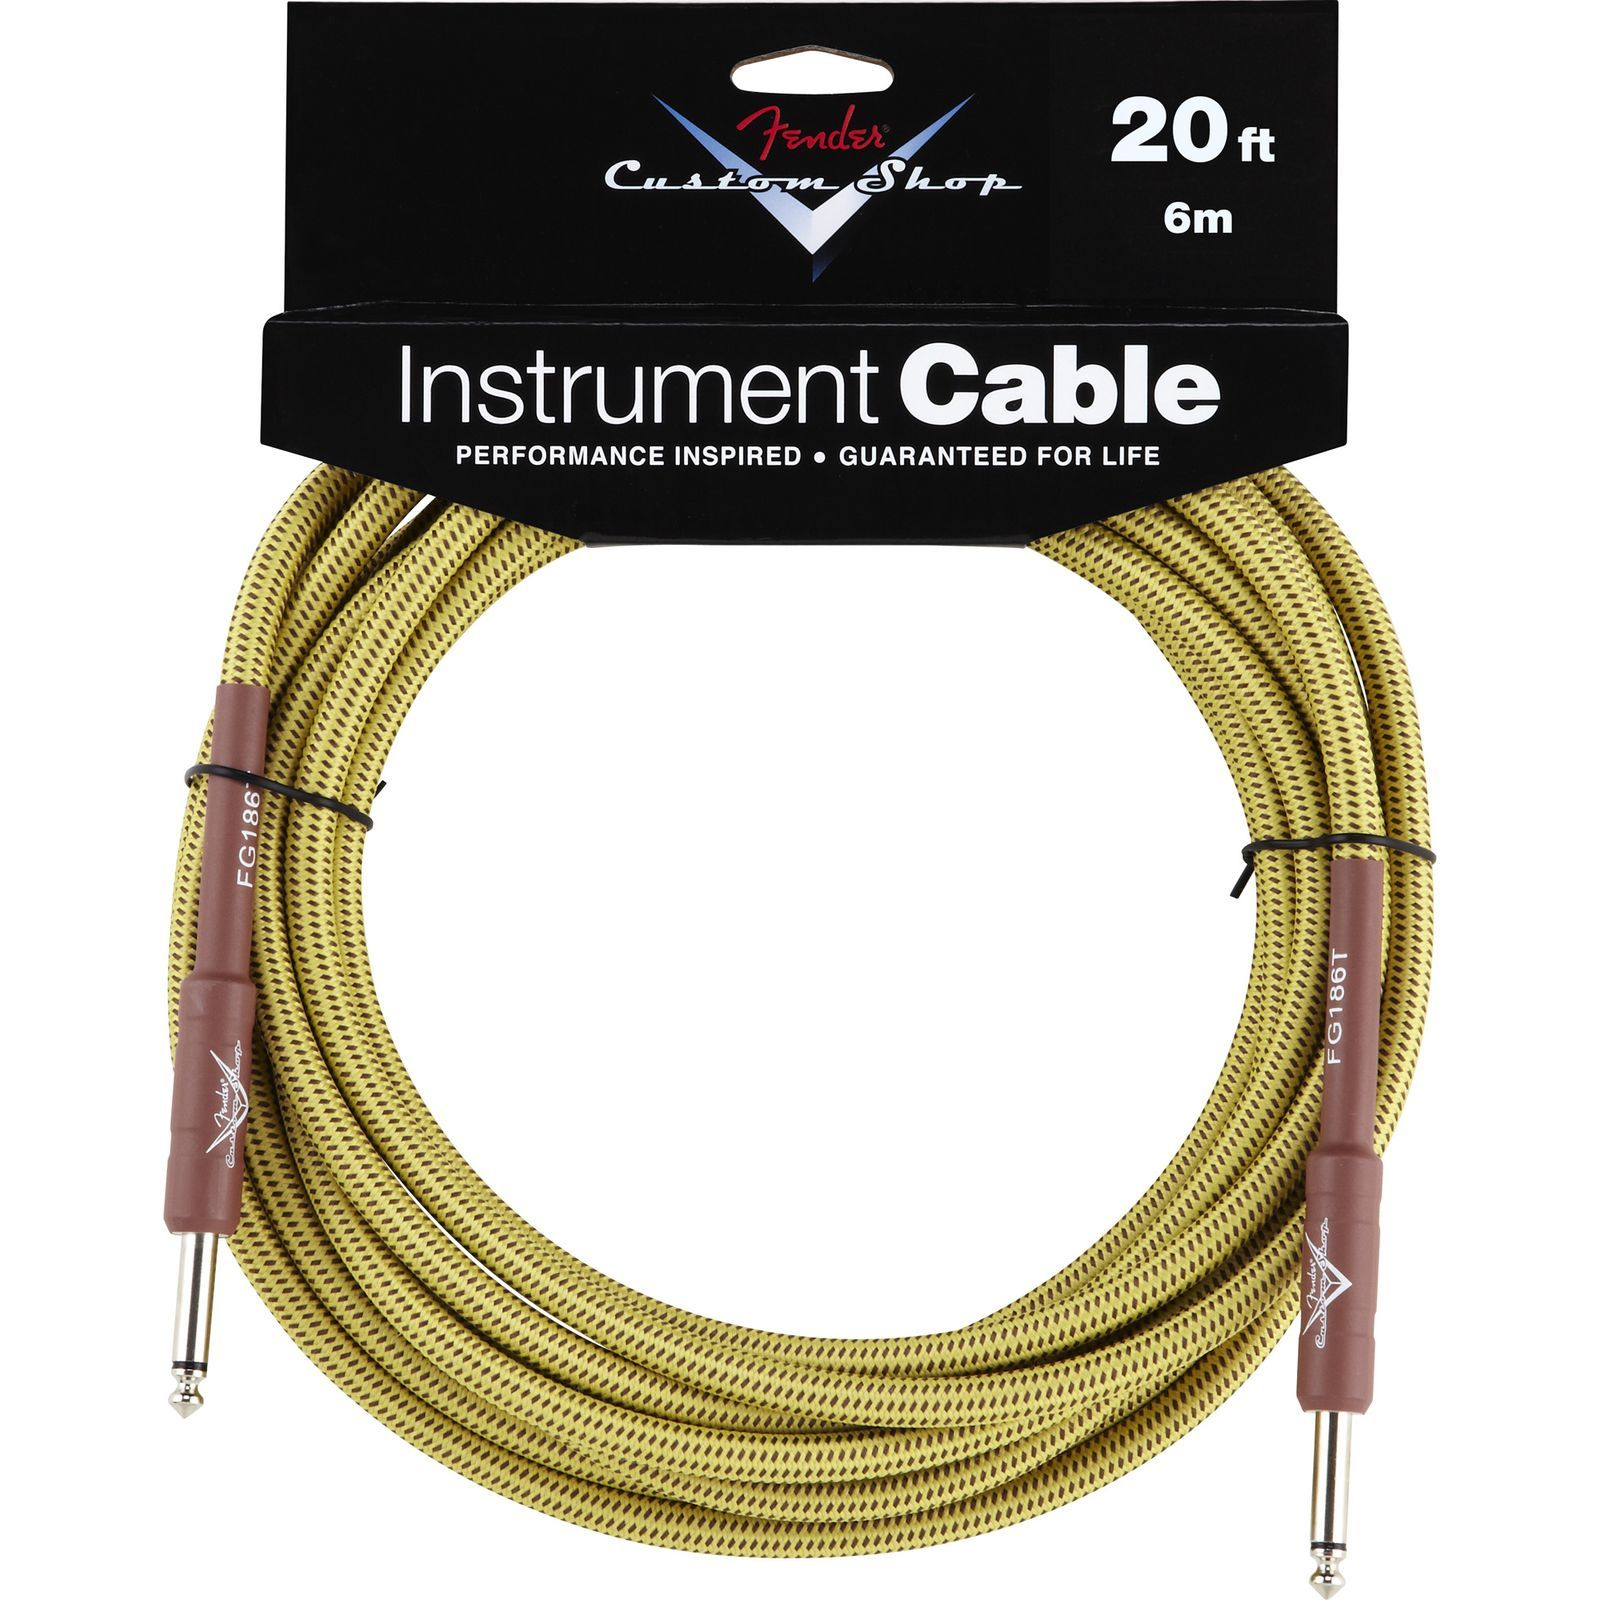 Fender Custom Shop Cable 6m TW Tweed, Kli/Kli Produktbild